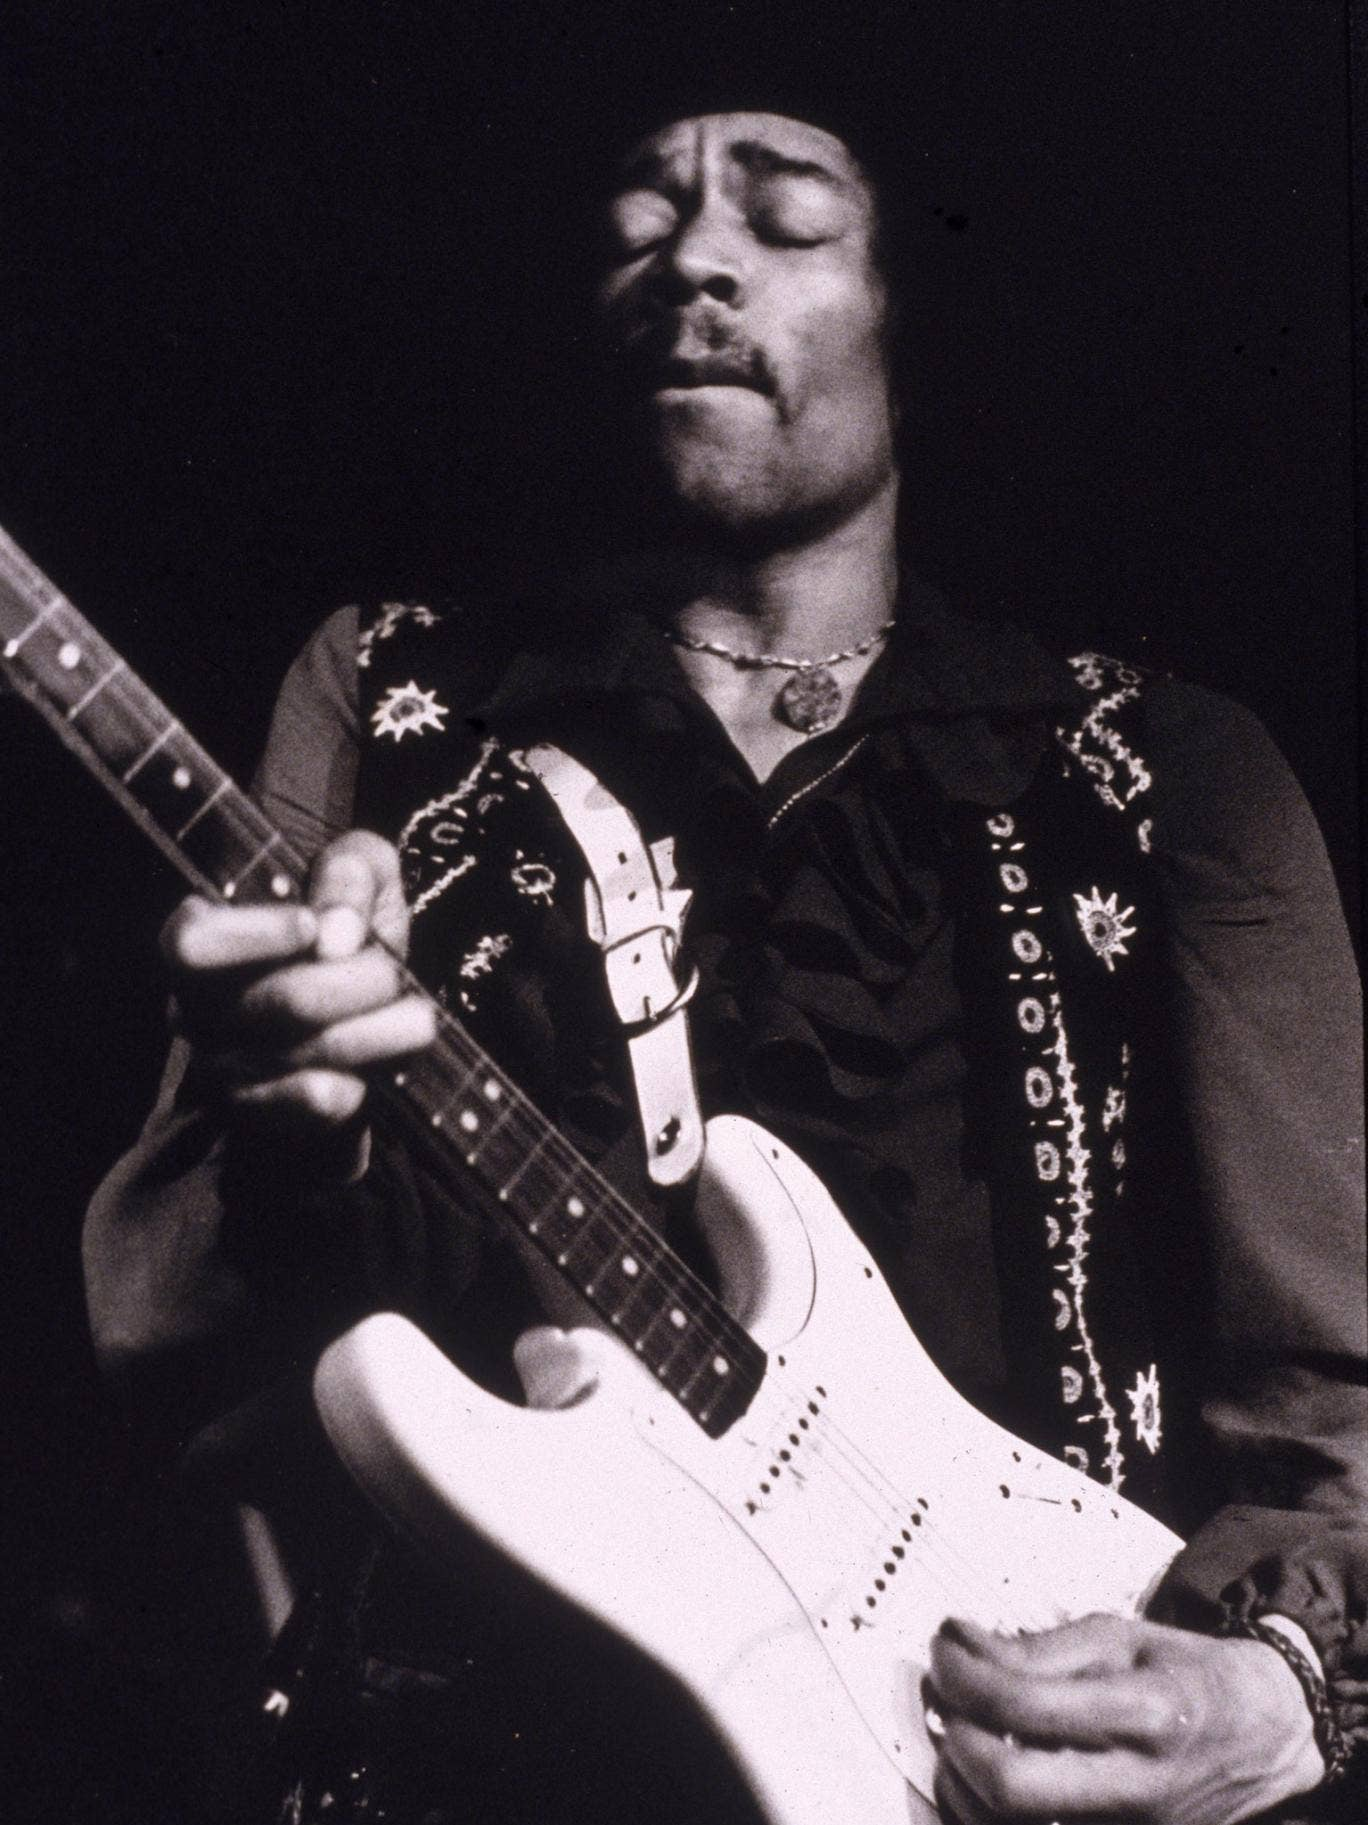 American musician Jimi Hendrix performs onstage, late 1960s.